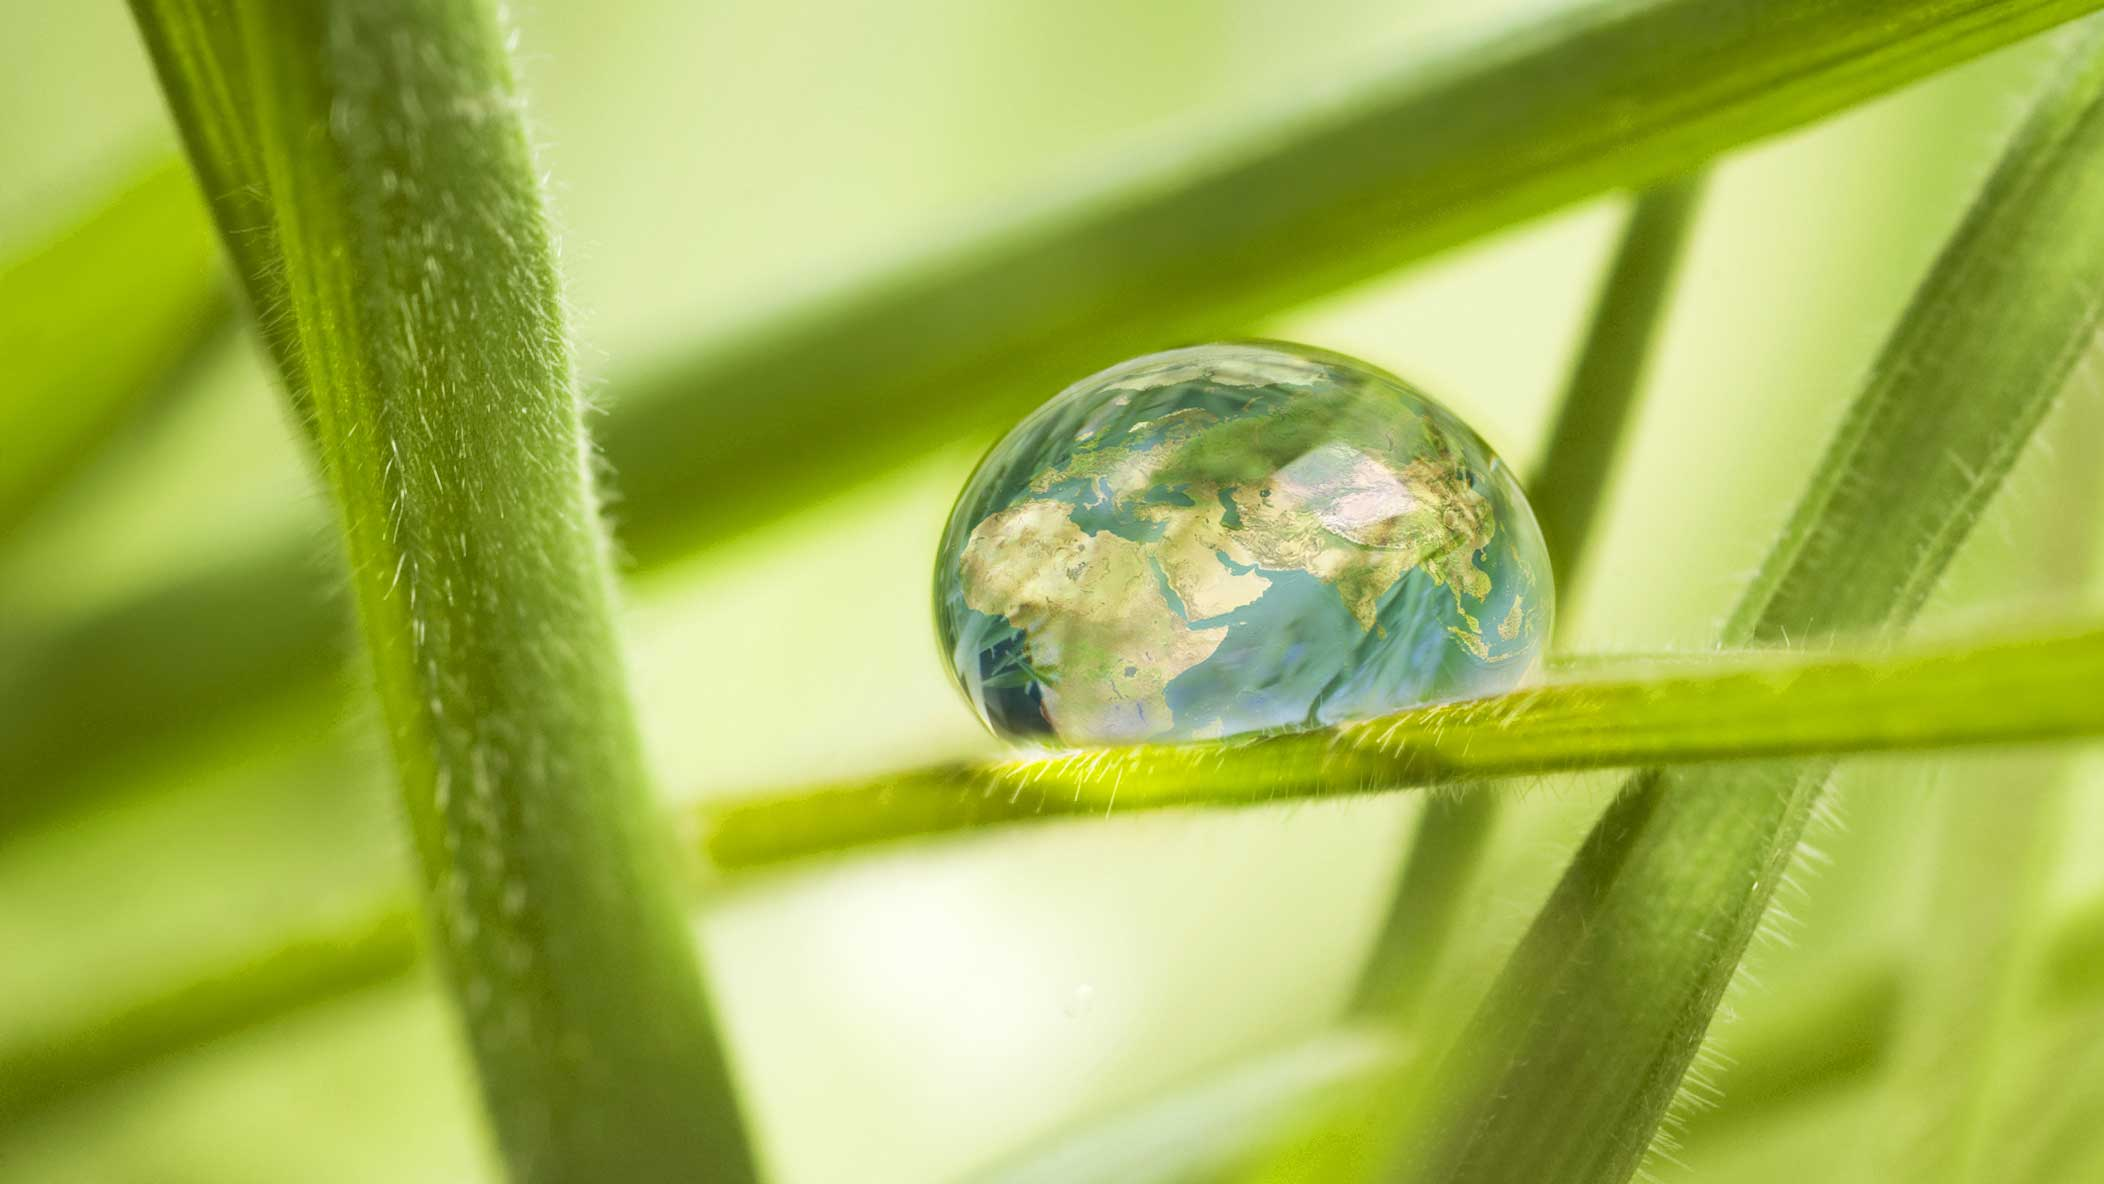 SMALL-432.59x243.33_Water-drop-with-Globe-image-on-Plant-Leaf